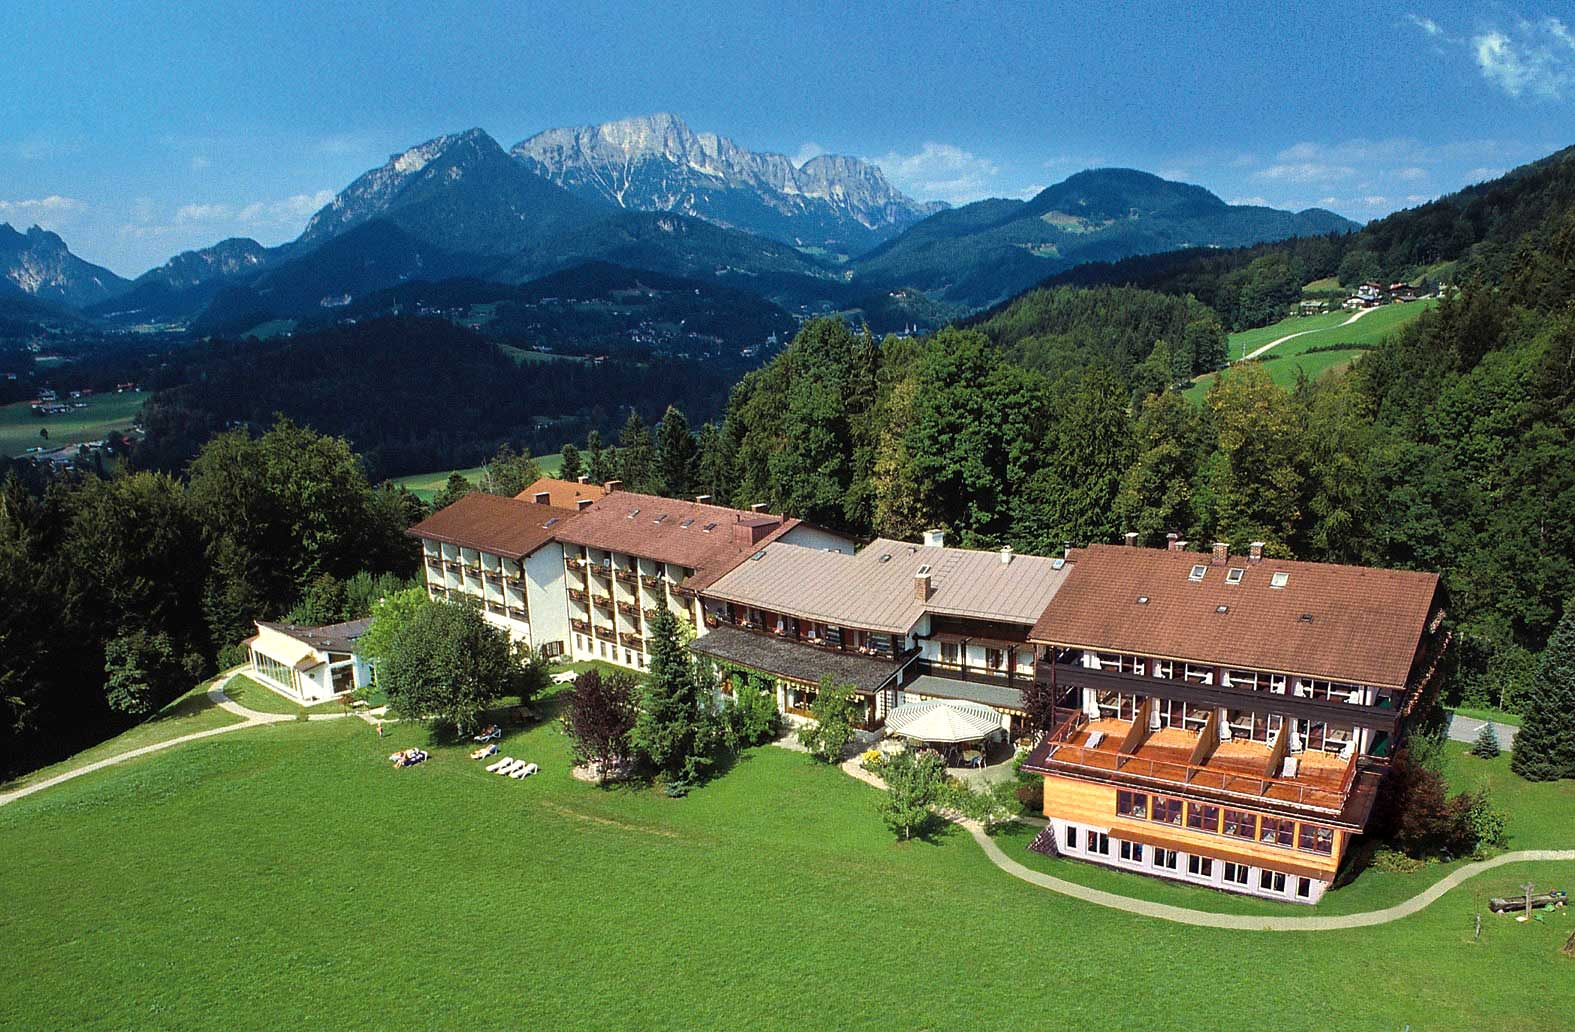 Die 25 top hotels in deutschland berchtesgadener land blog for Top design hotels deutschland